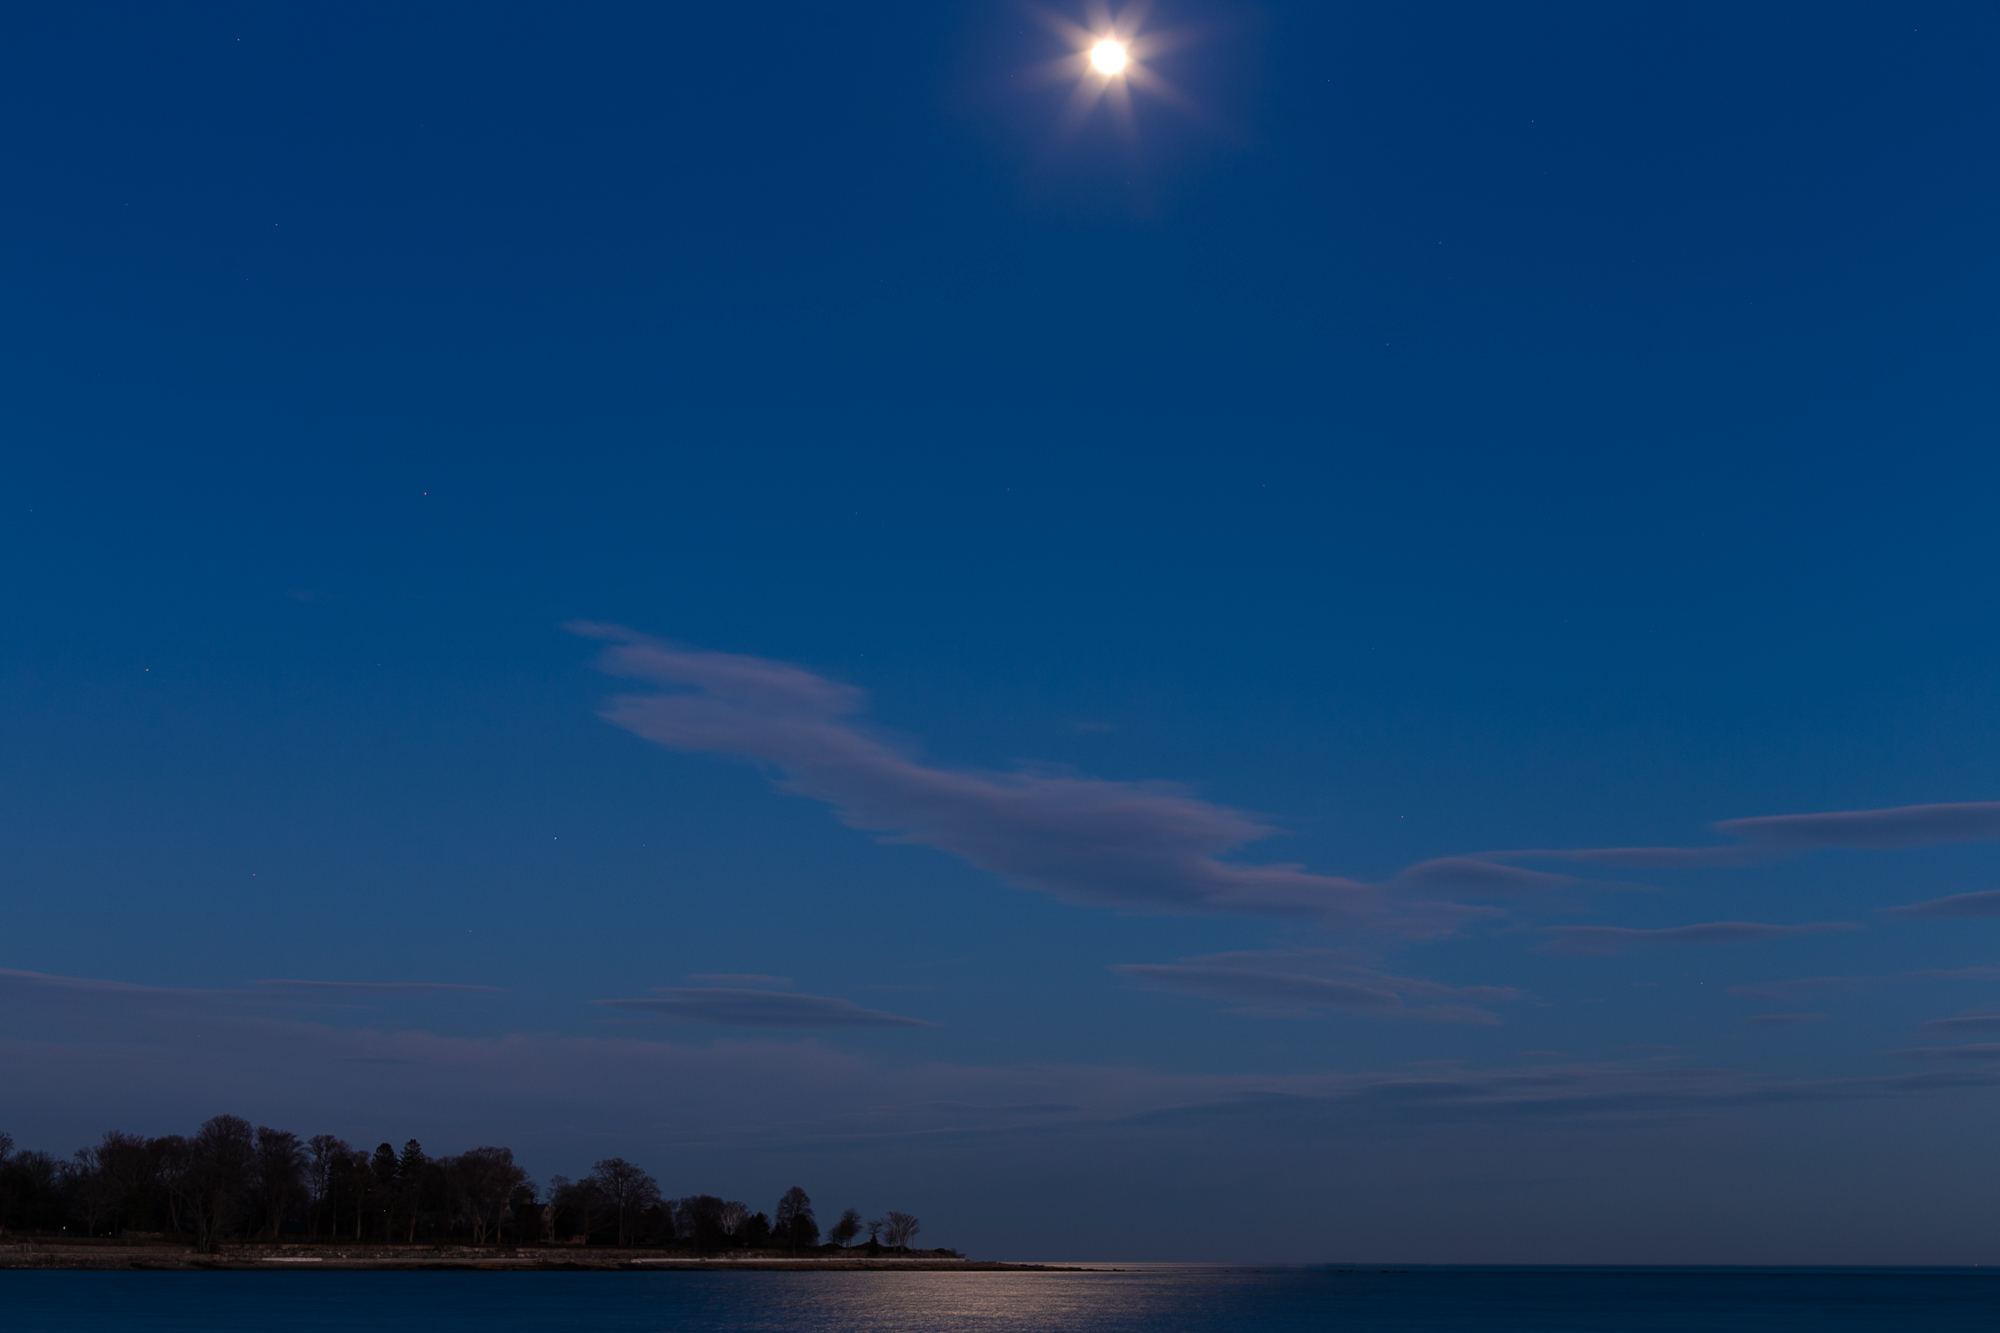 Burying Hill Beach in Westport, CT looks other worldly on a moonlit night